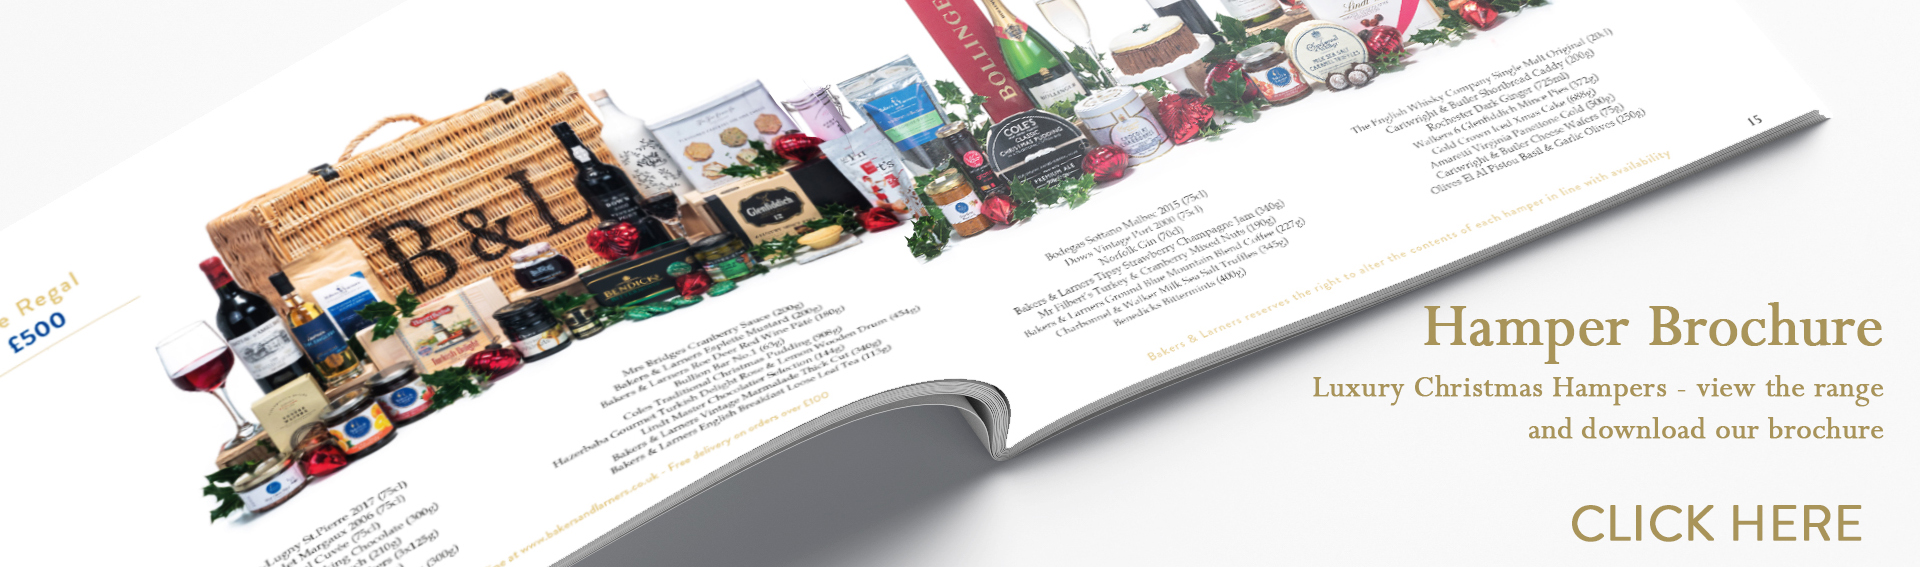 Luxury Christmas Hampers - View Range & Brochure